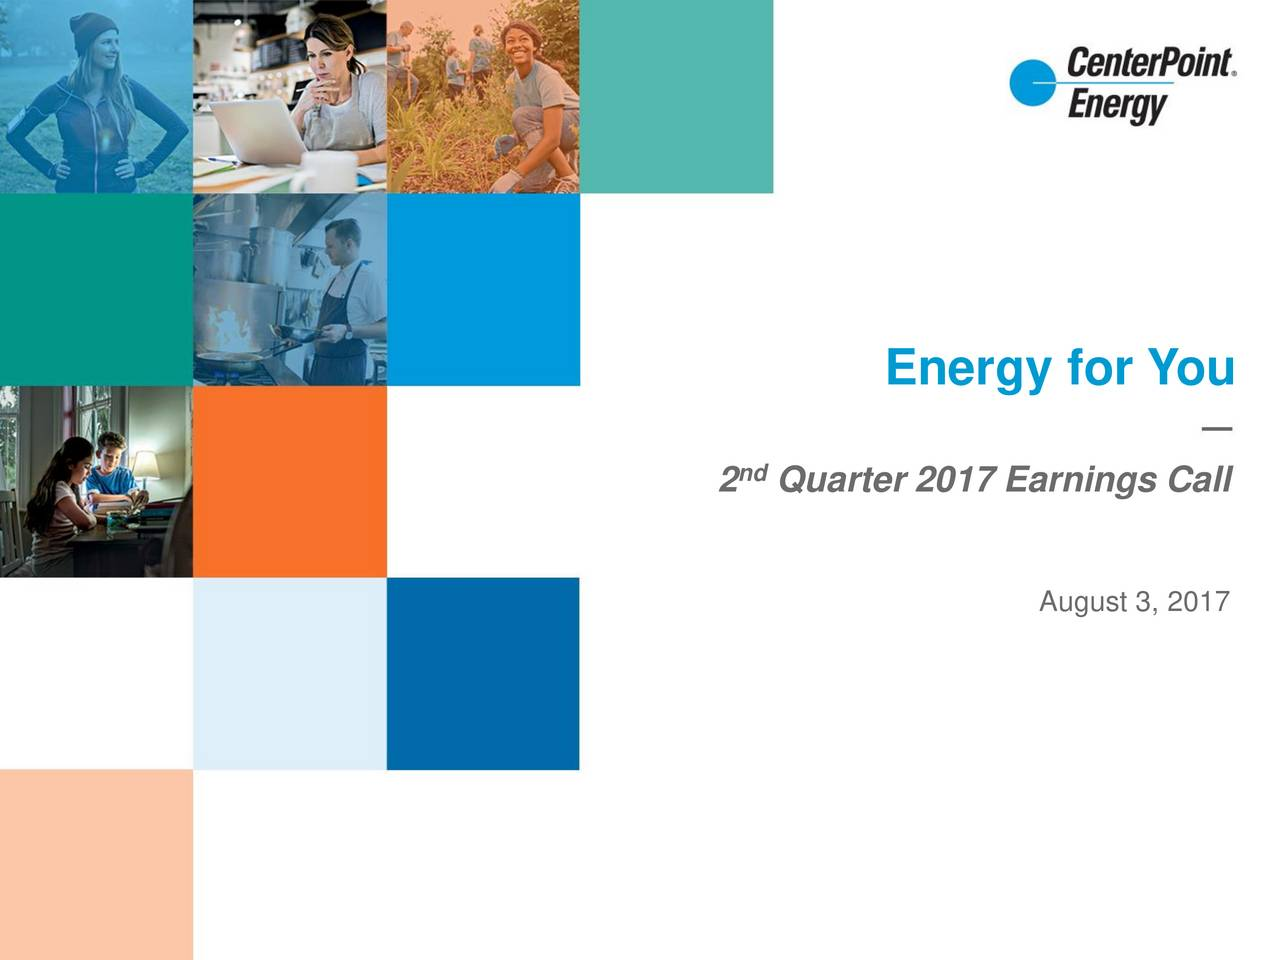 2ndQuarter 2017 Earnings Call August 3, 2017